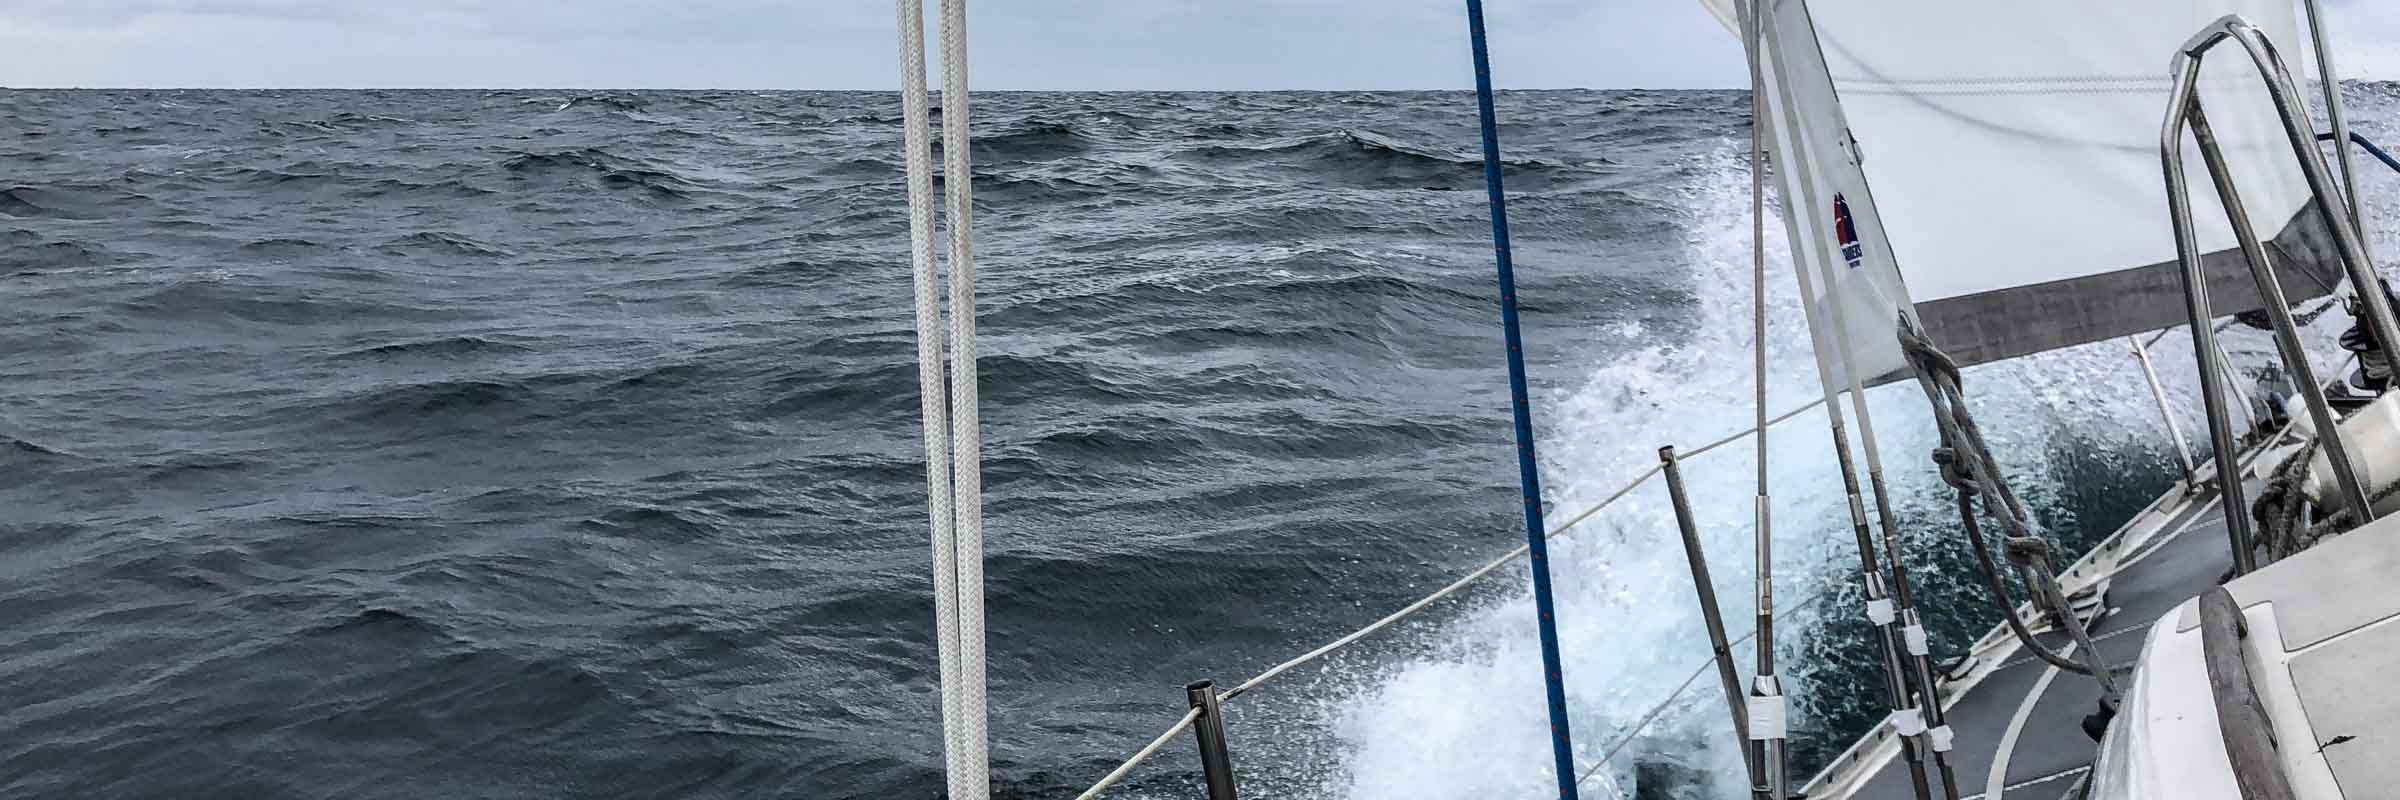 Sailing across the Bay of Biscay